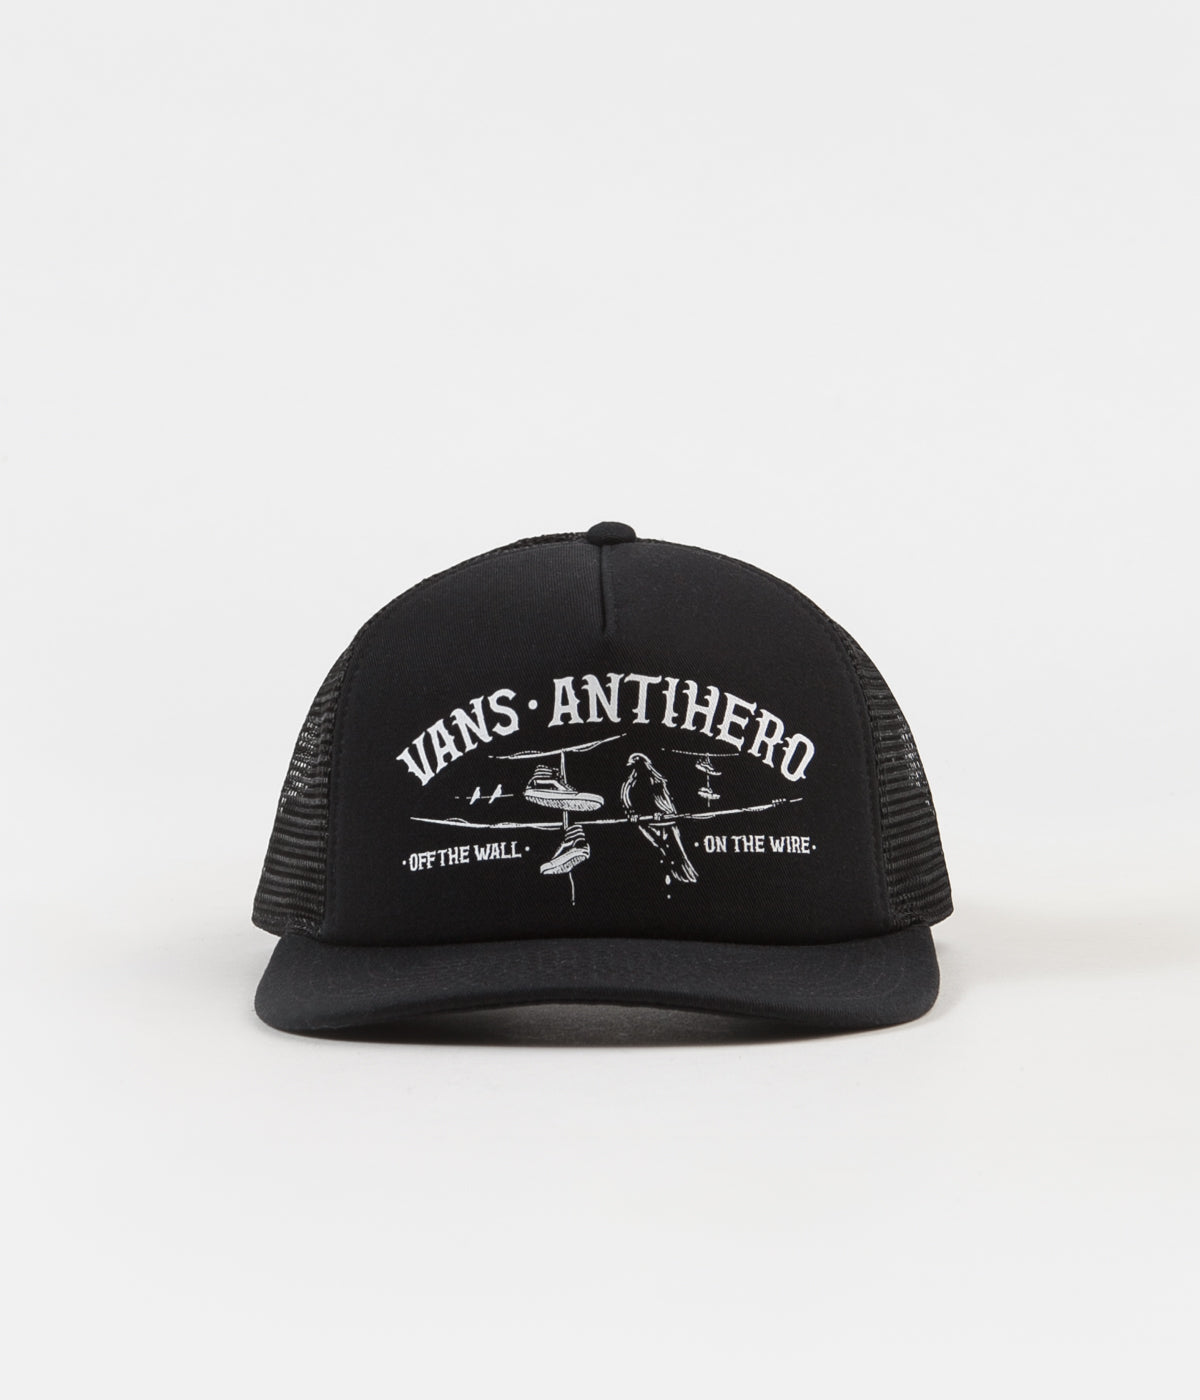 ... Vans x Anti Hero Wired Trucker Cap - Black   Zinnia ... d4acc9cf131d